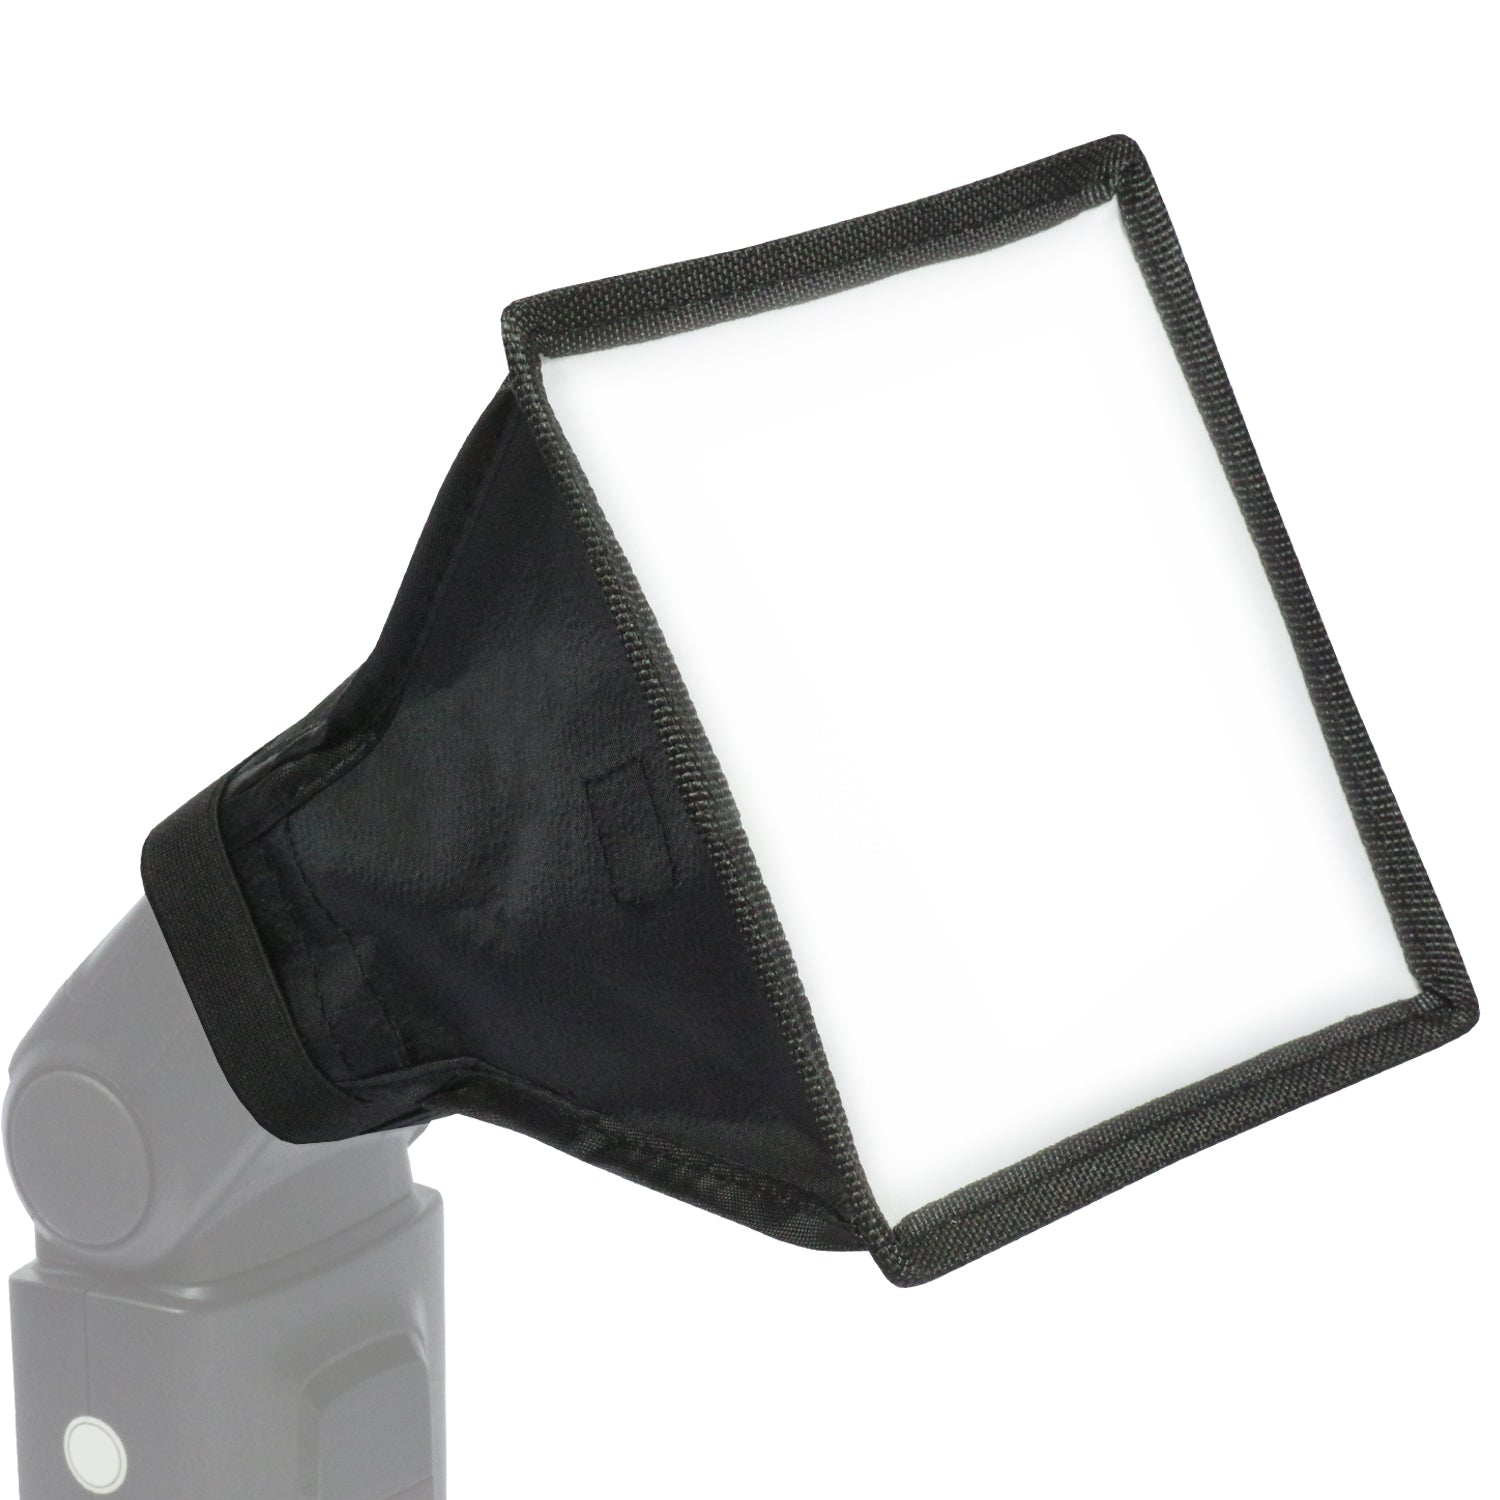 Loadstone Studio Photography 6 x 7 inch Dimension Foldable Mini Softbox Light Diffuser Cover, 2 Shape Fan Shape and Rectangle, LED Light Panel & Flash Light with Velcro, Two-Sided Reversible, WMLS4537